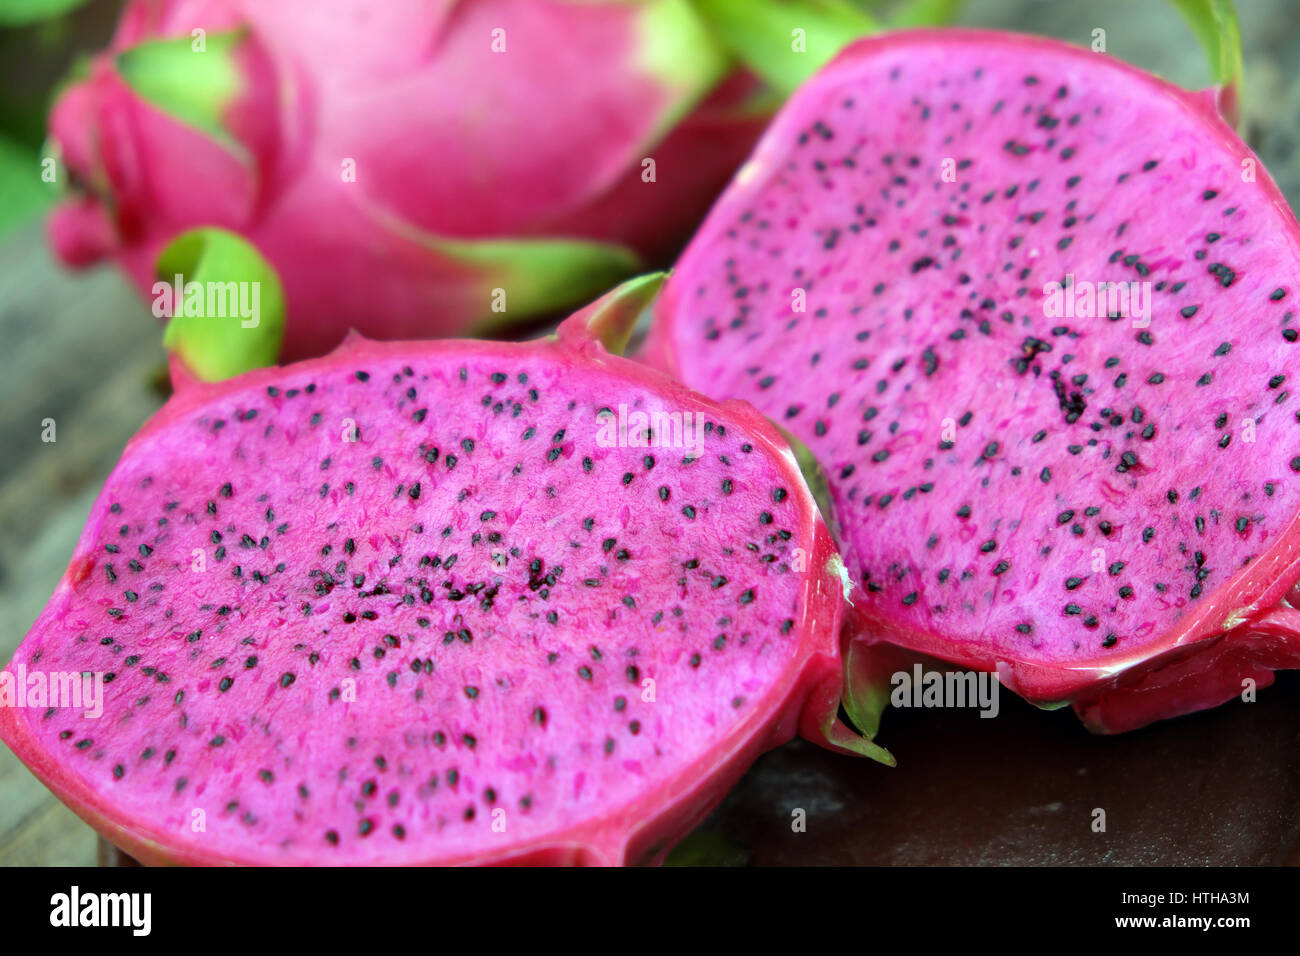 Eating Dragon Fruit, A Tropical Fruits, Vietnam Agriculture Product, With  Purle, Pink